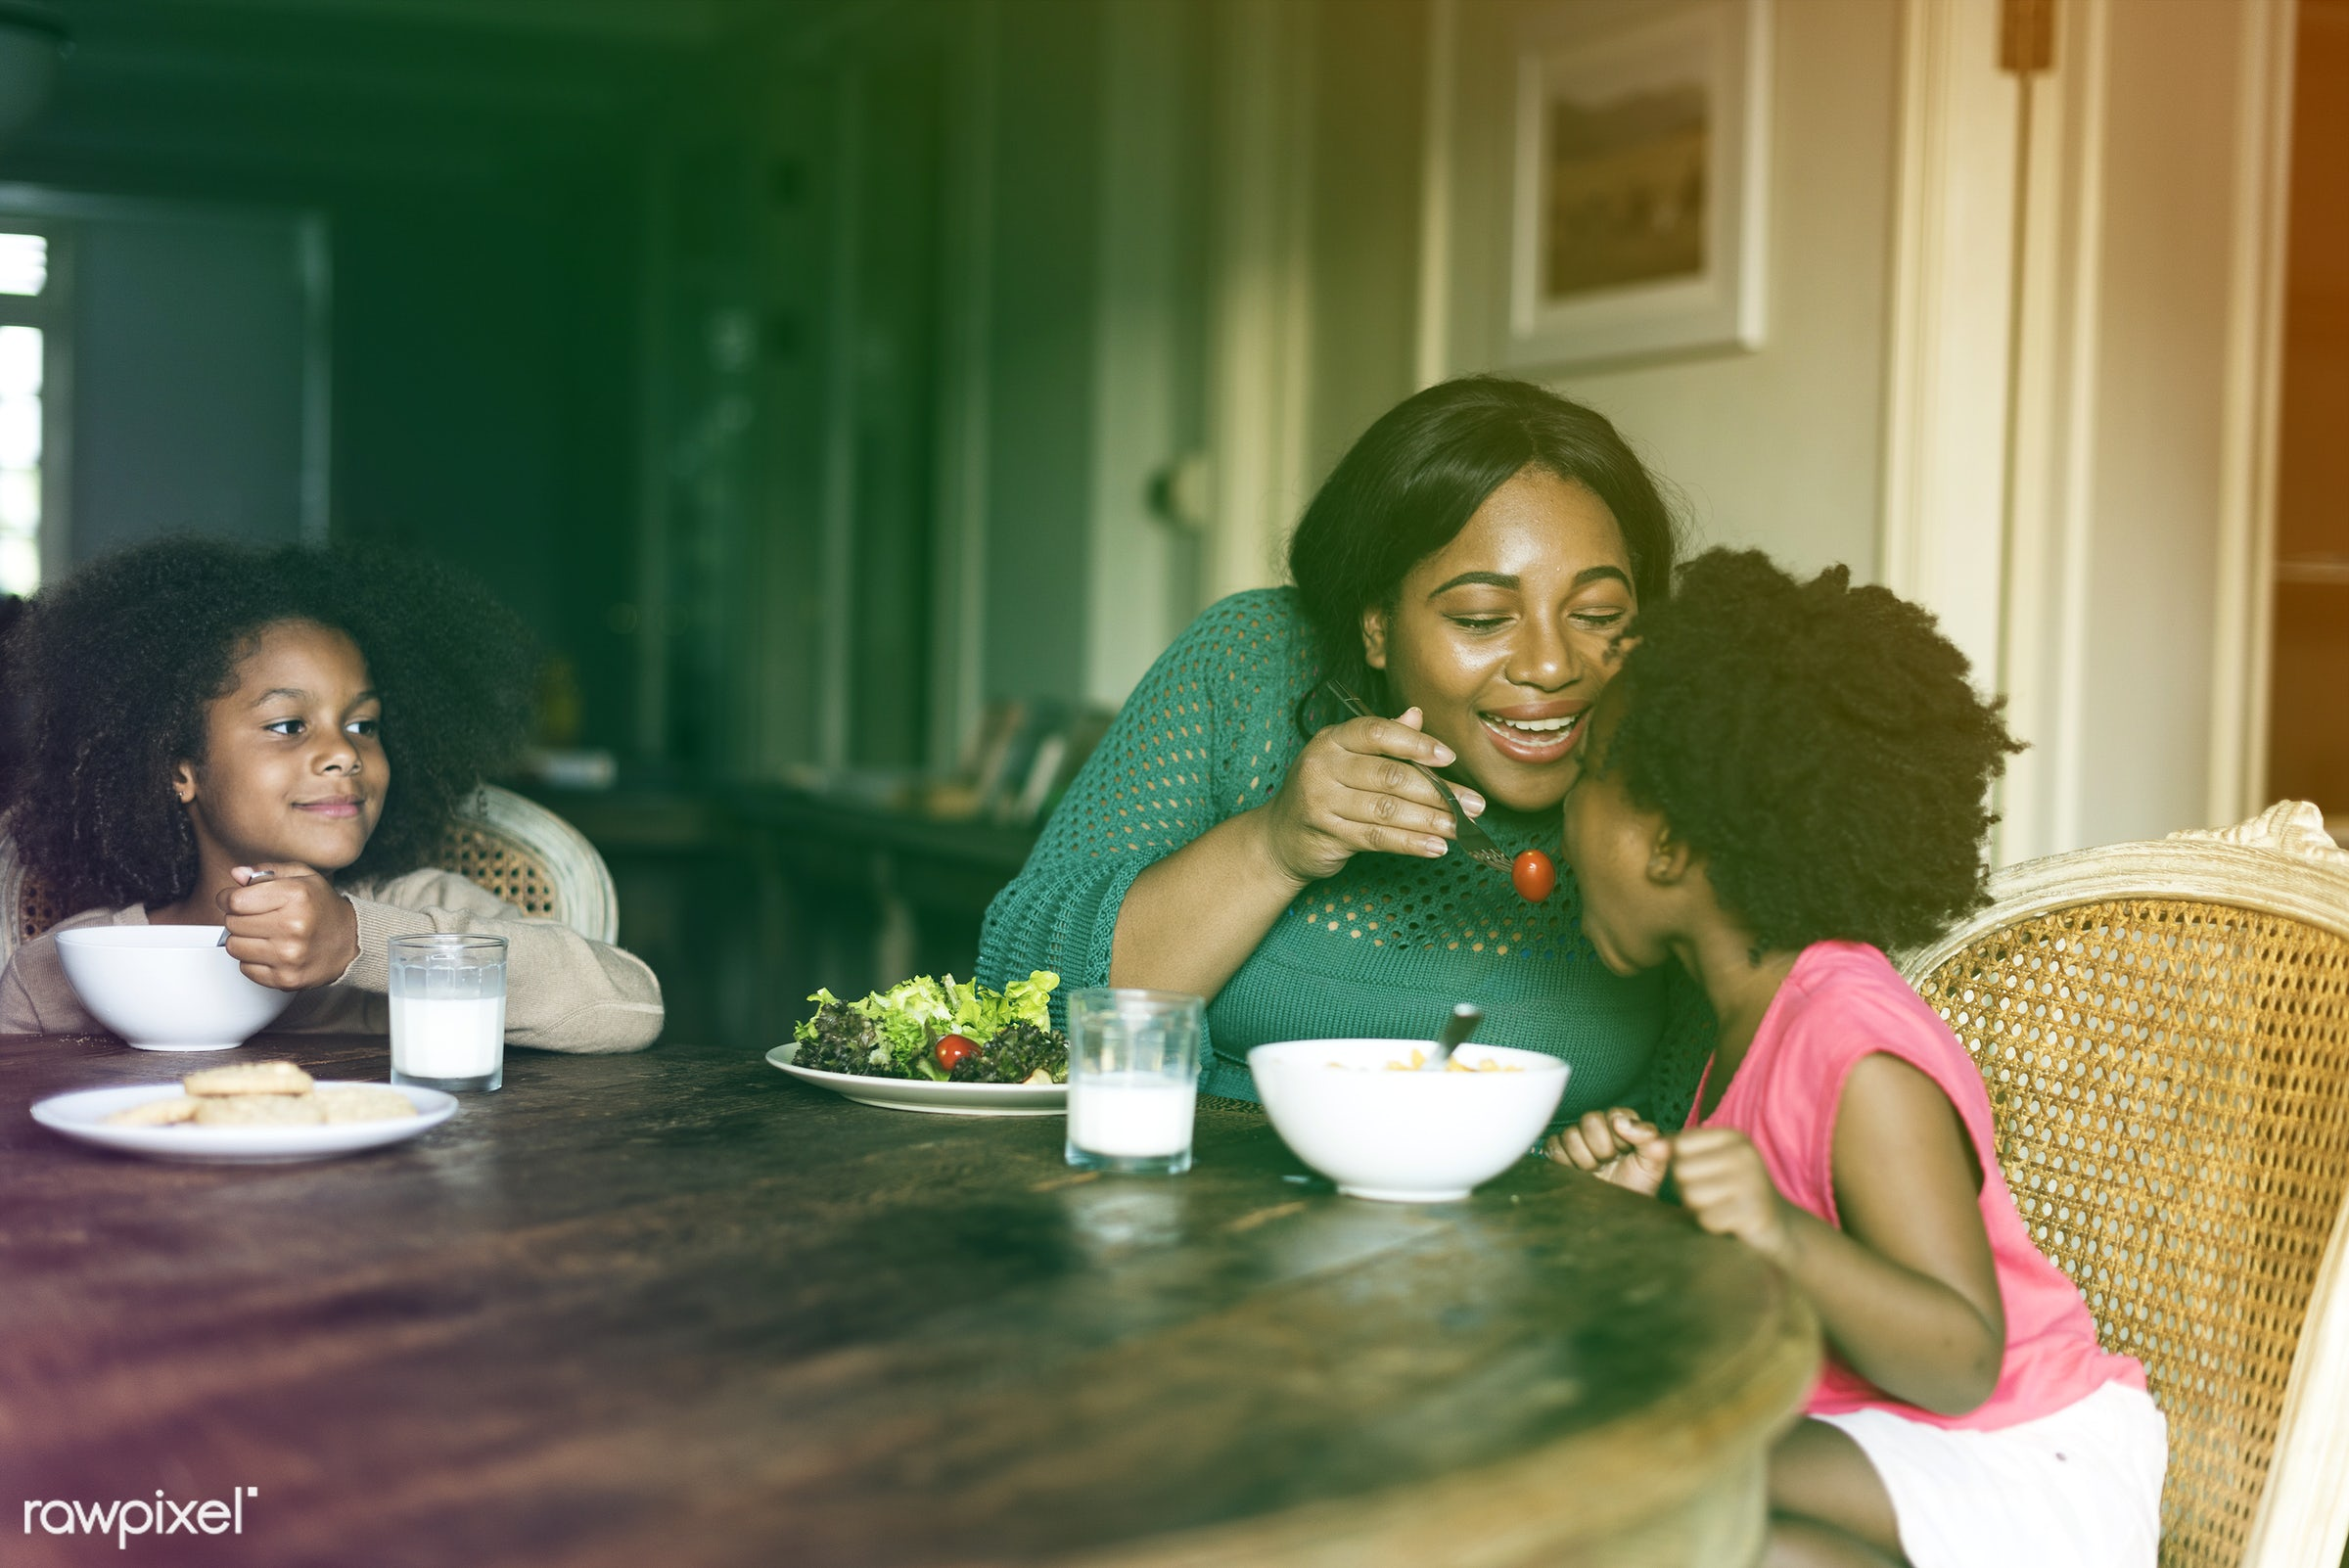 salad, calm, home, african, freedom, residential, relax, daughter, house, people, sister, kiss, life, serenity, family,...